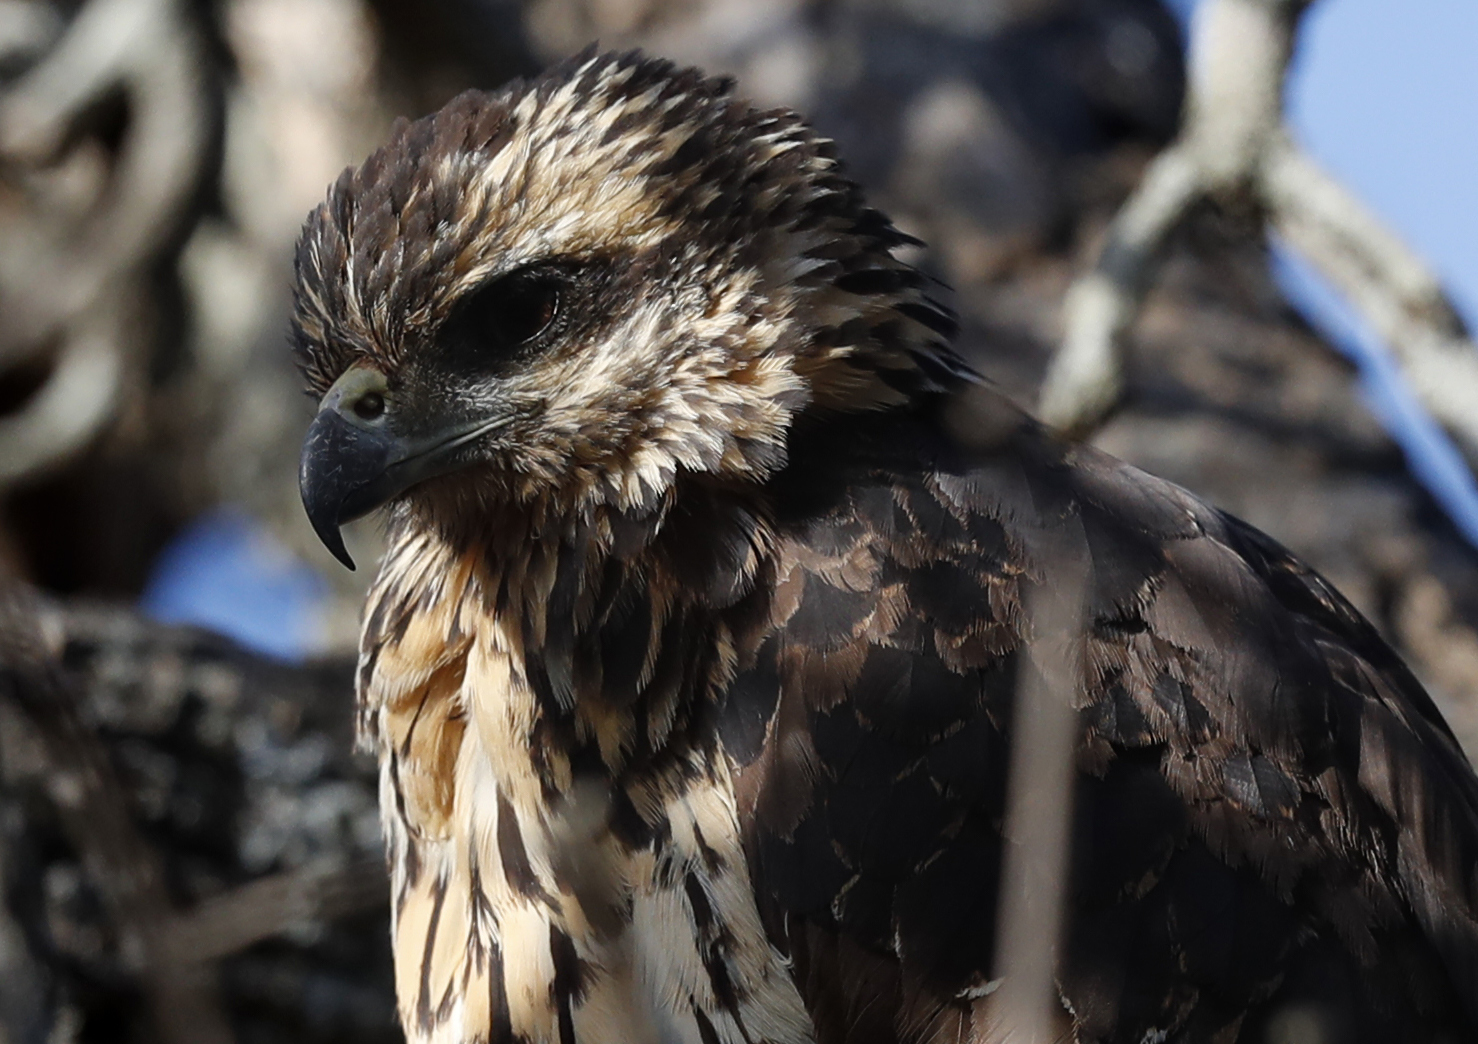 A great black hawk, a native of Central and South America, sits in a tree at Deering Oaks Park, Friday, Nov. 30, 2018, in Portland, Maine. The bird drew hundreds of birders with binoculars and cameras to the park. (AP Photo/Robert F. Bukaty)